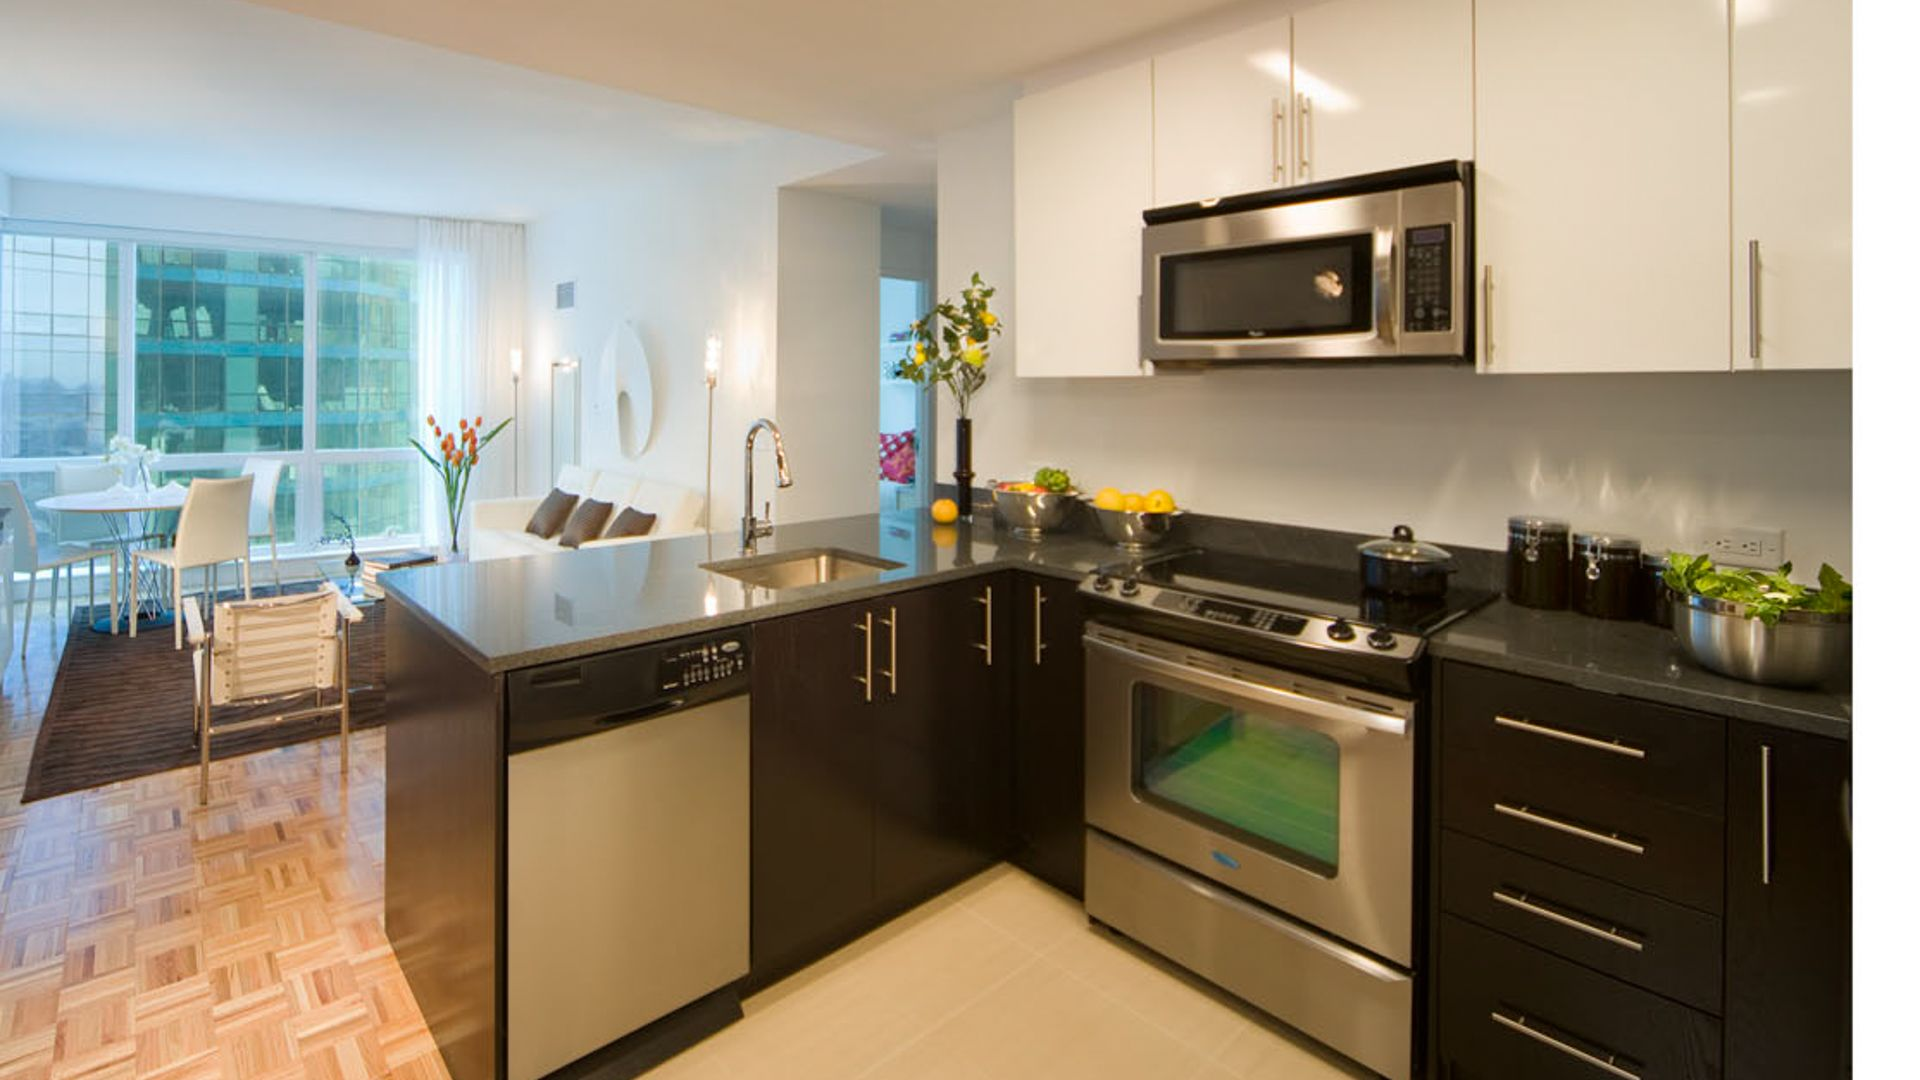 70 Greene Apartments - Kitchen